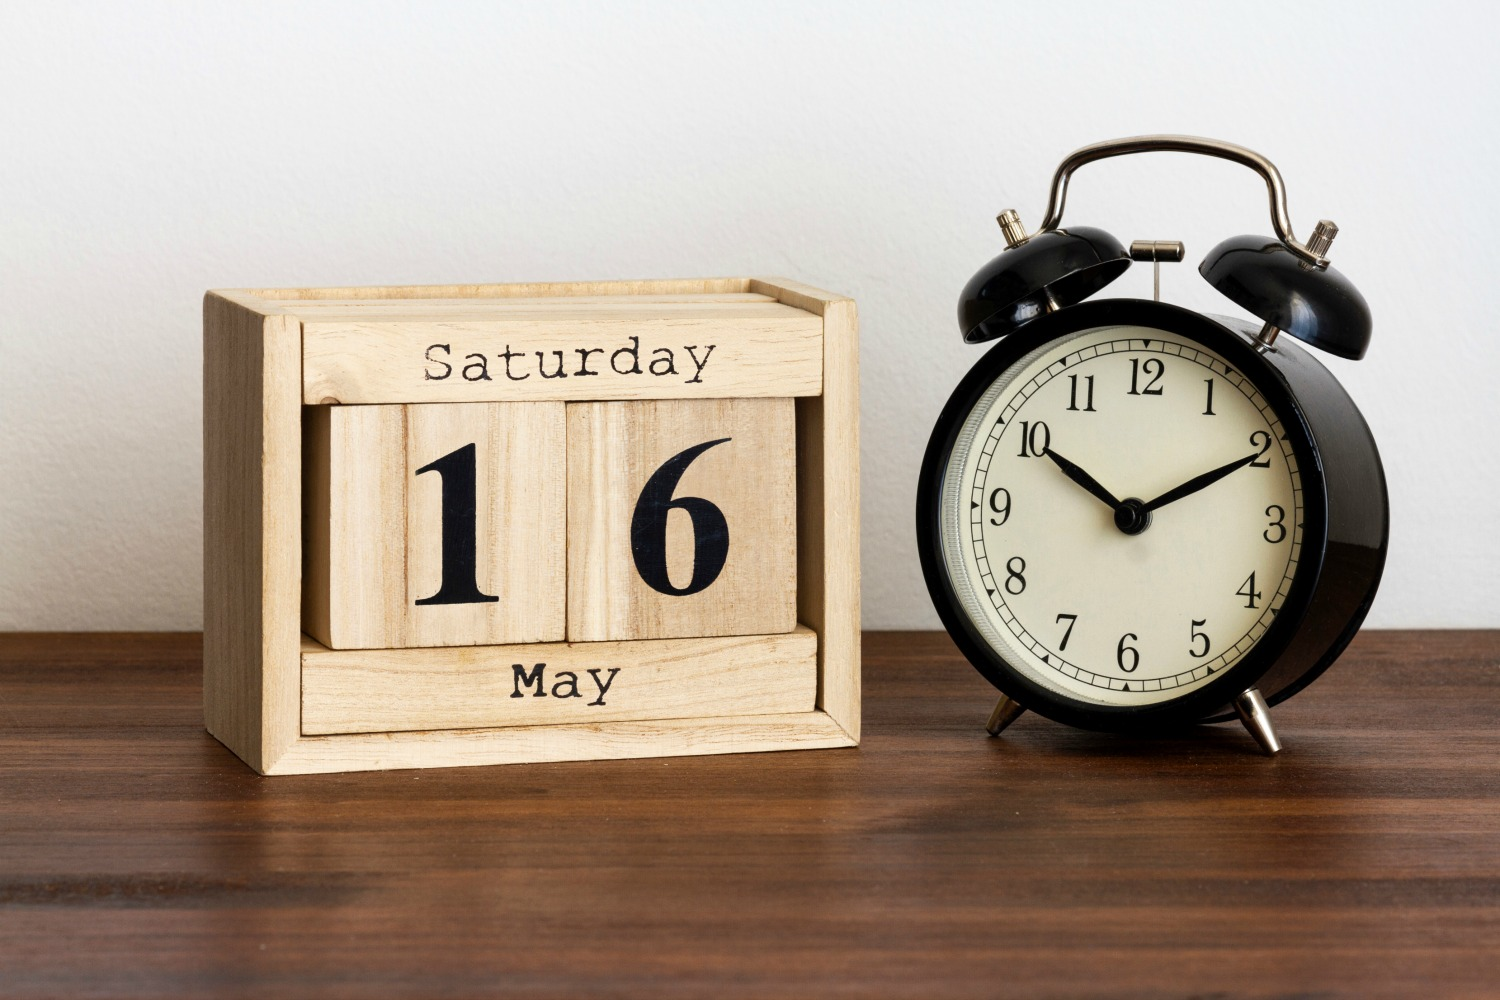 How To Choose A Date For Your Yard Sale… The Best Month, Day & Time For Garage Sales